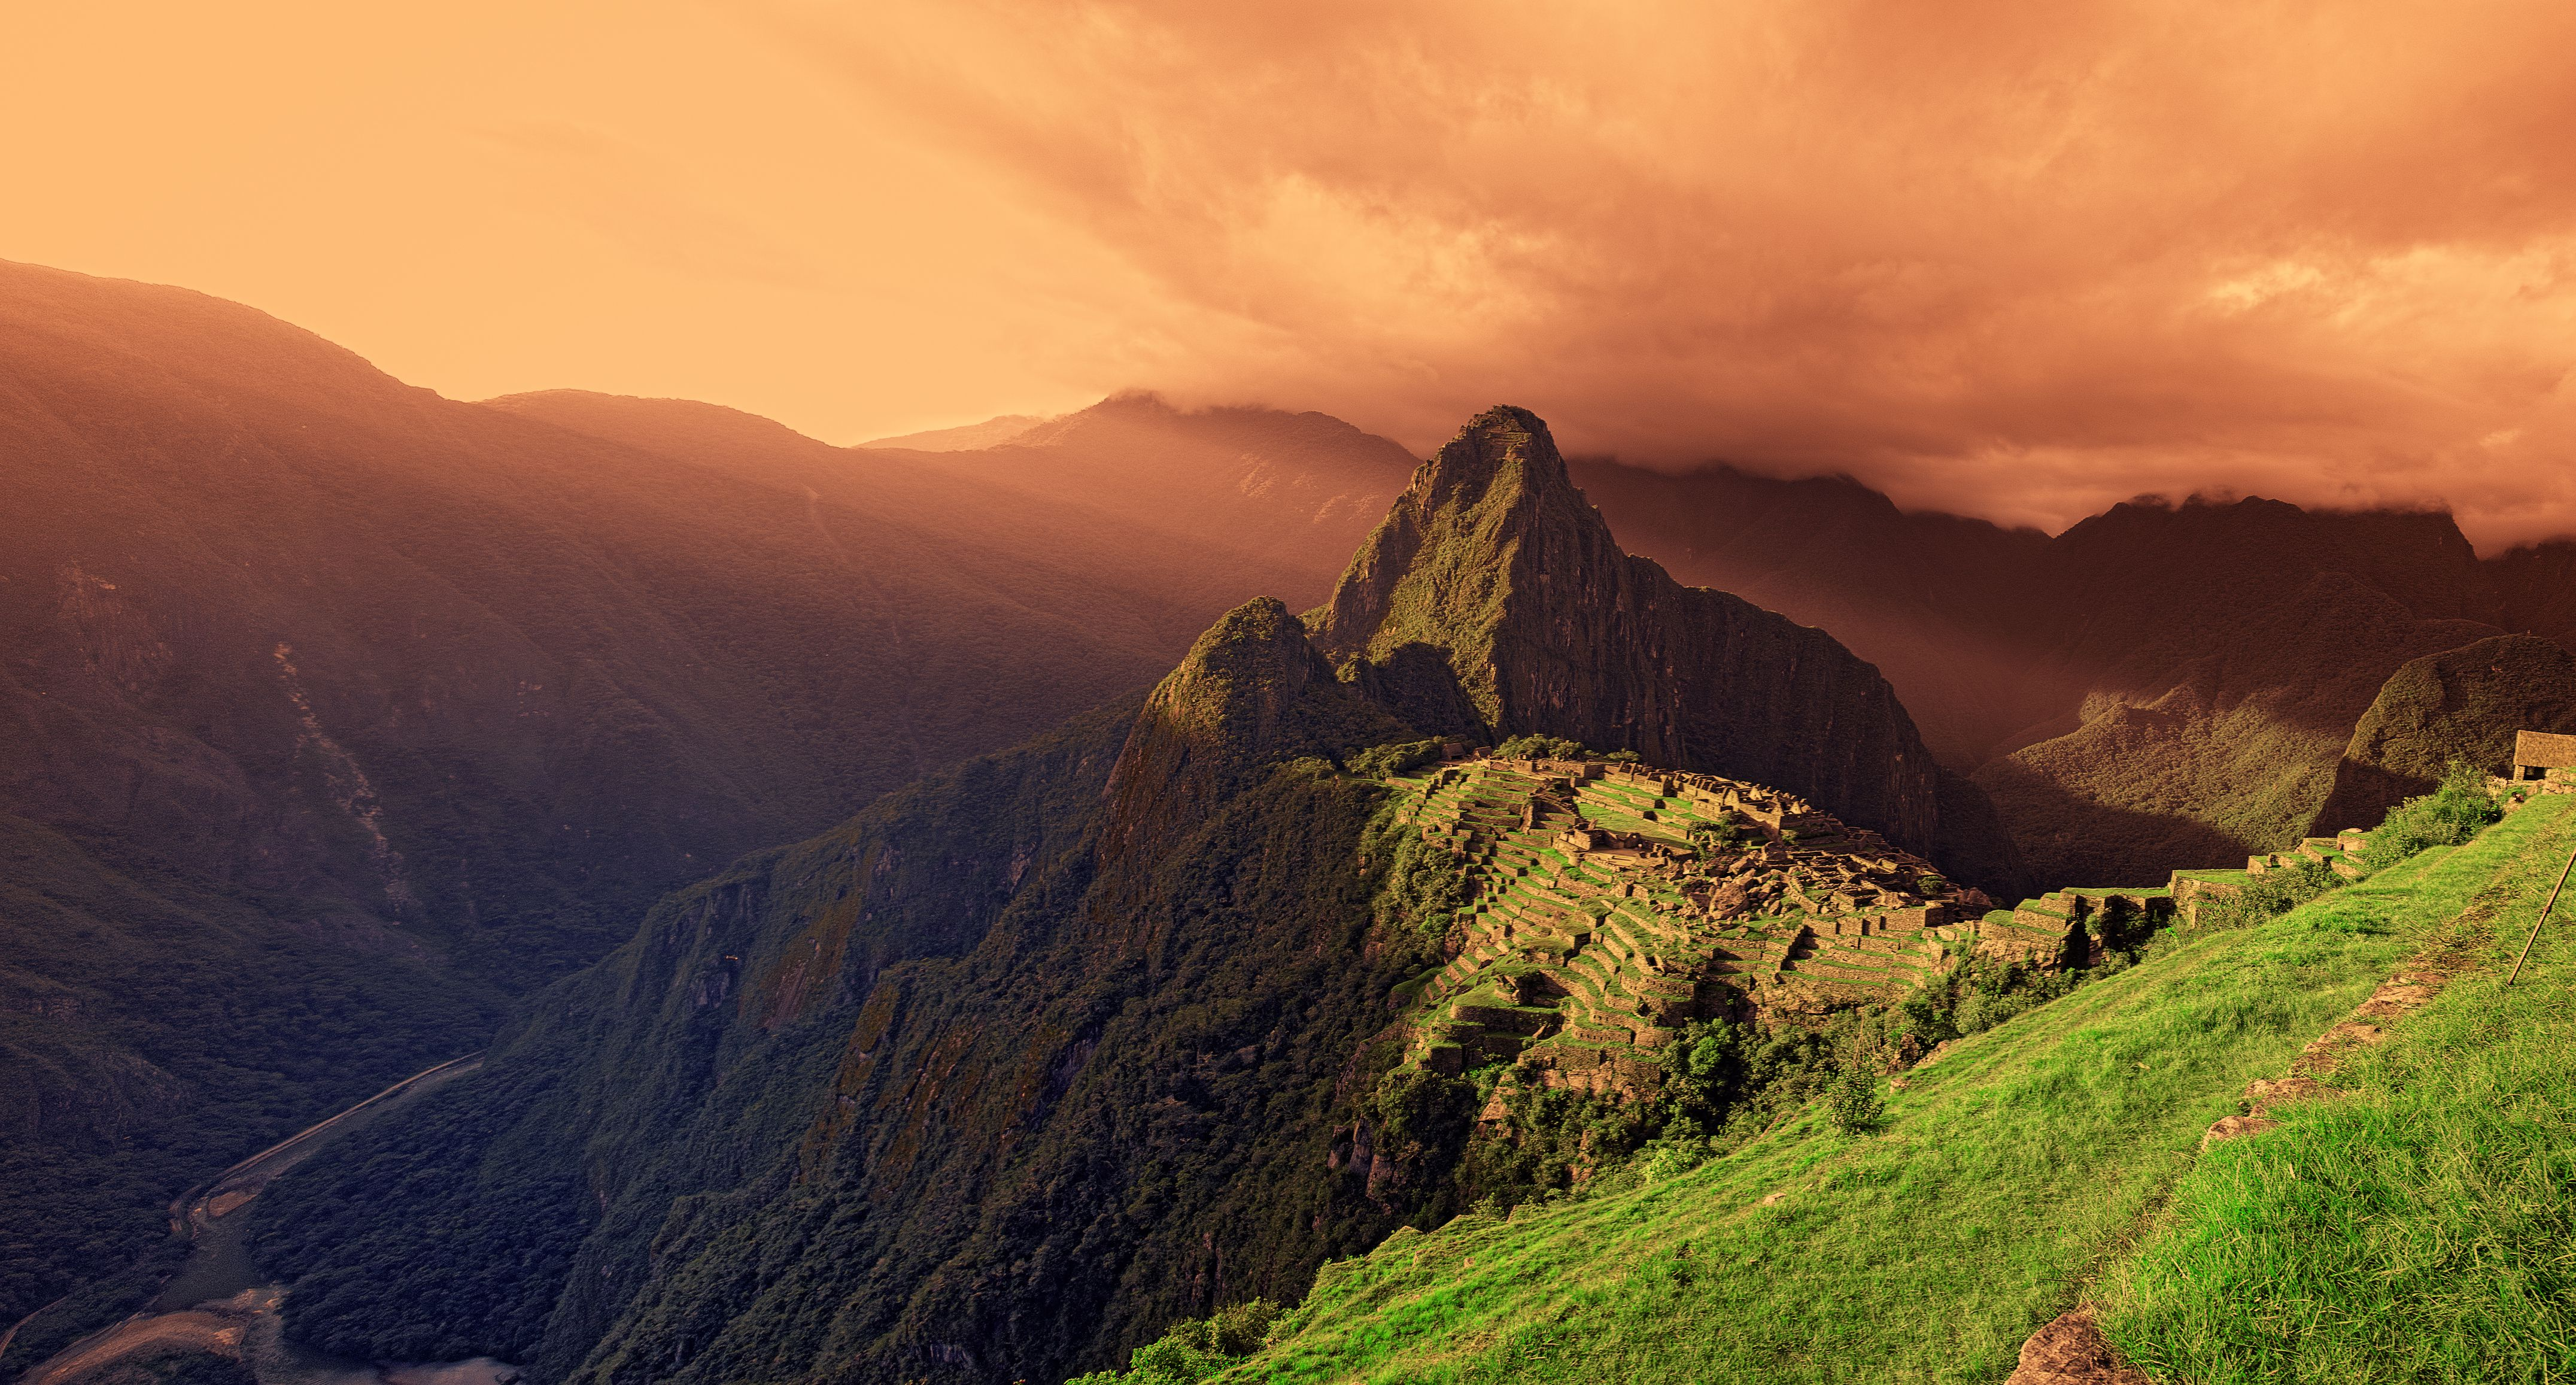 Machu Picchu at sunset.